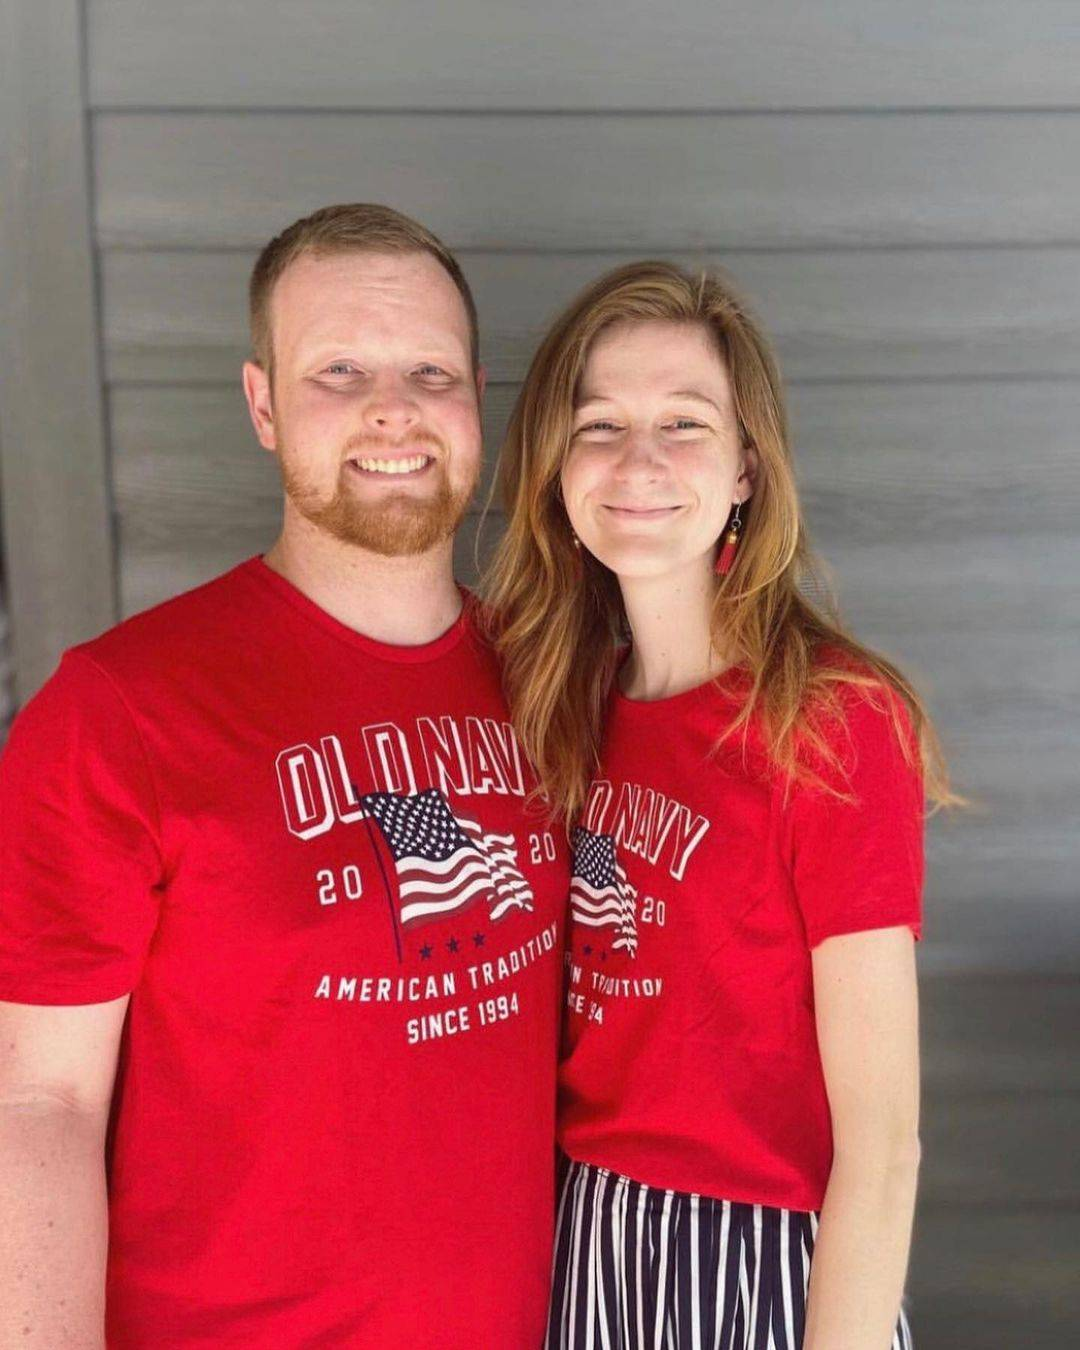 ginger hair couple in matching old navy shirts